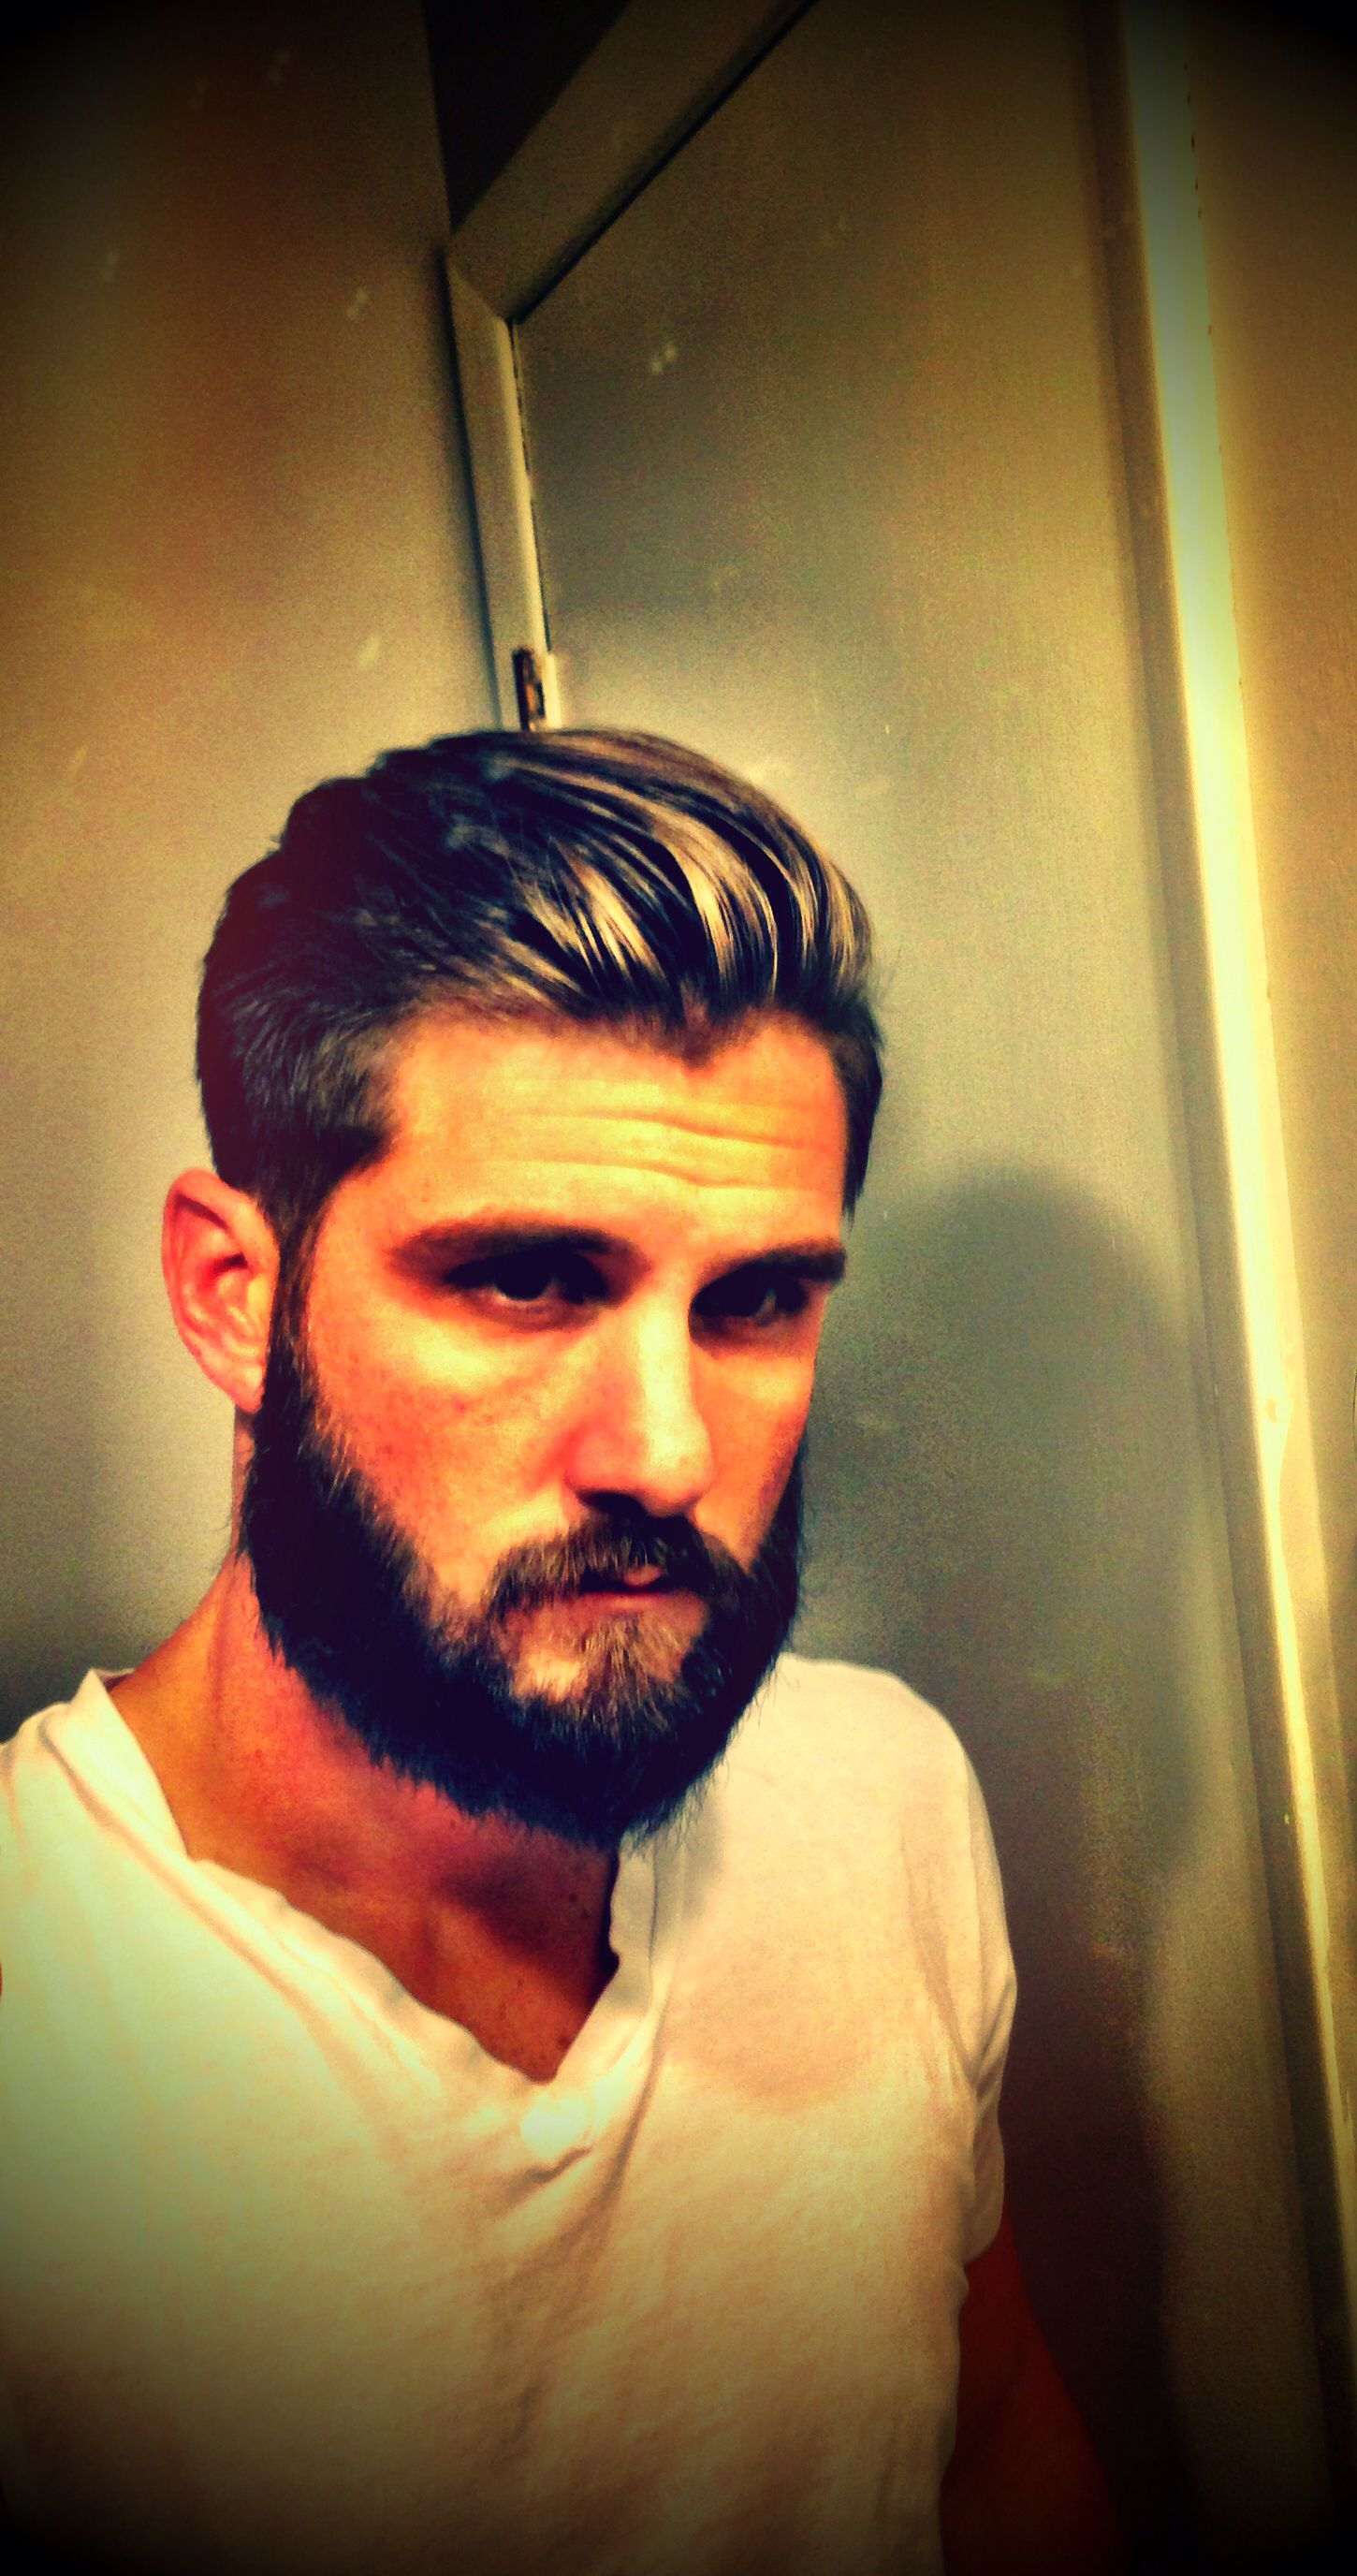 Popular Hairstyles Archives Hairstyles Haircuts For Men Women Mens Hairstyles Hair And Beard Styles Mens Modern Hairstyles